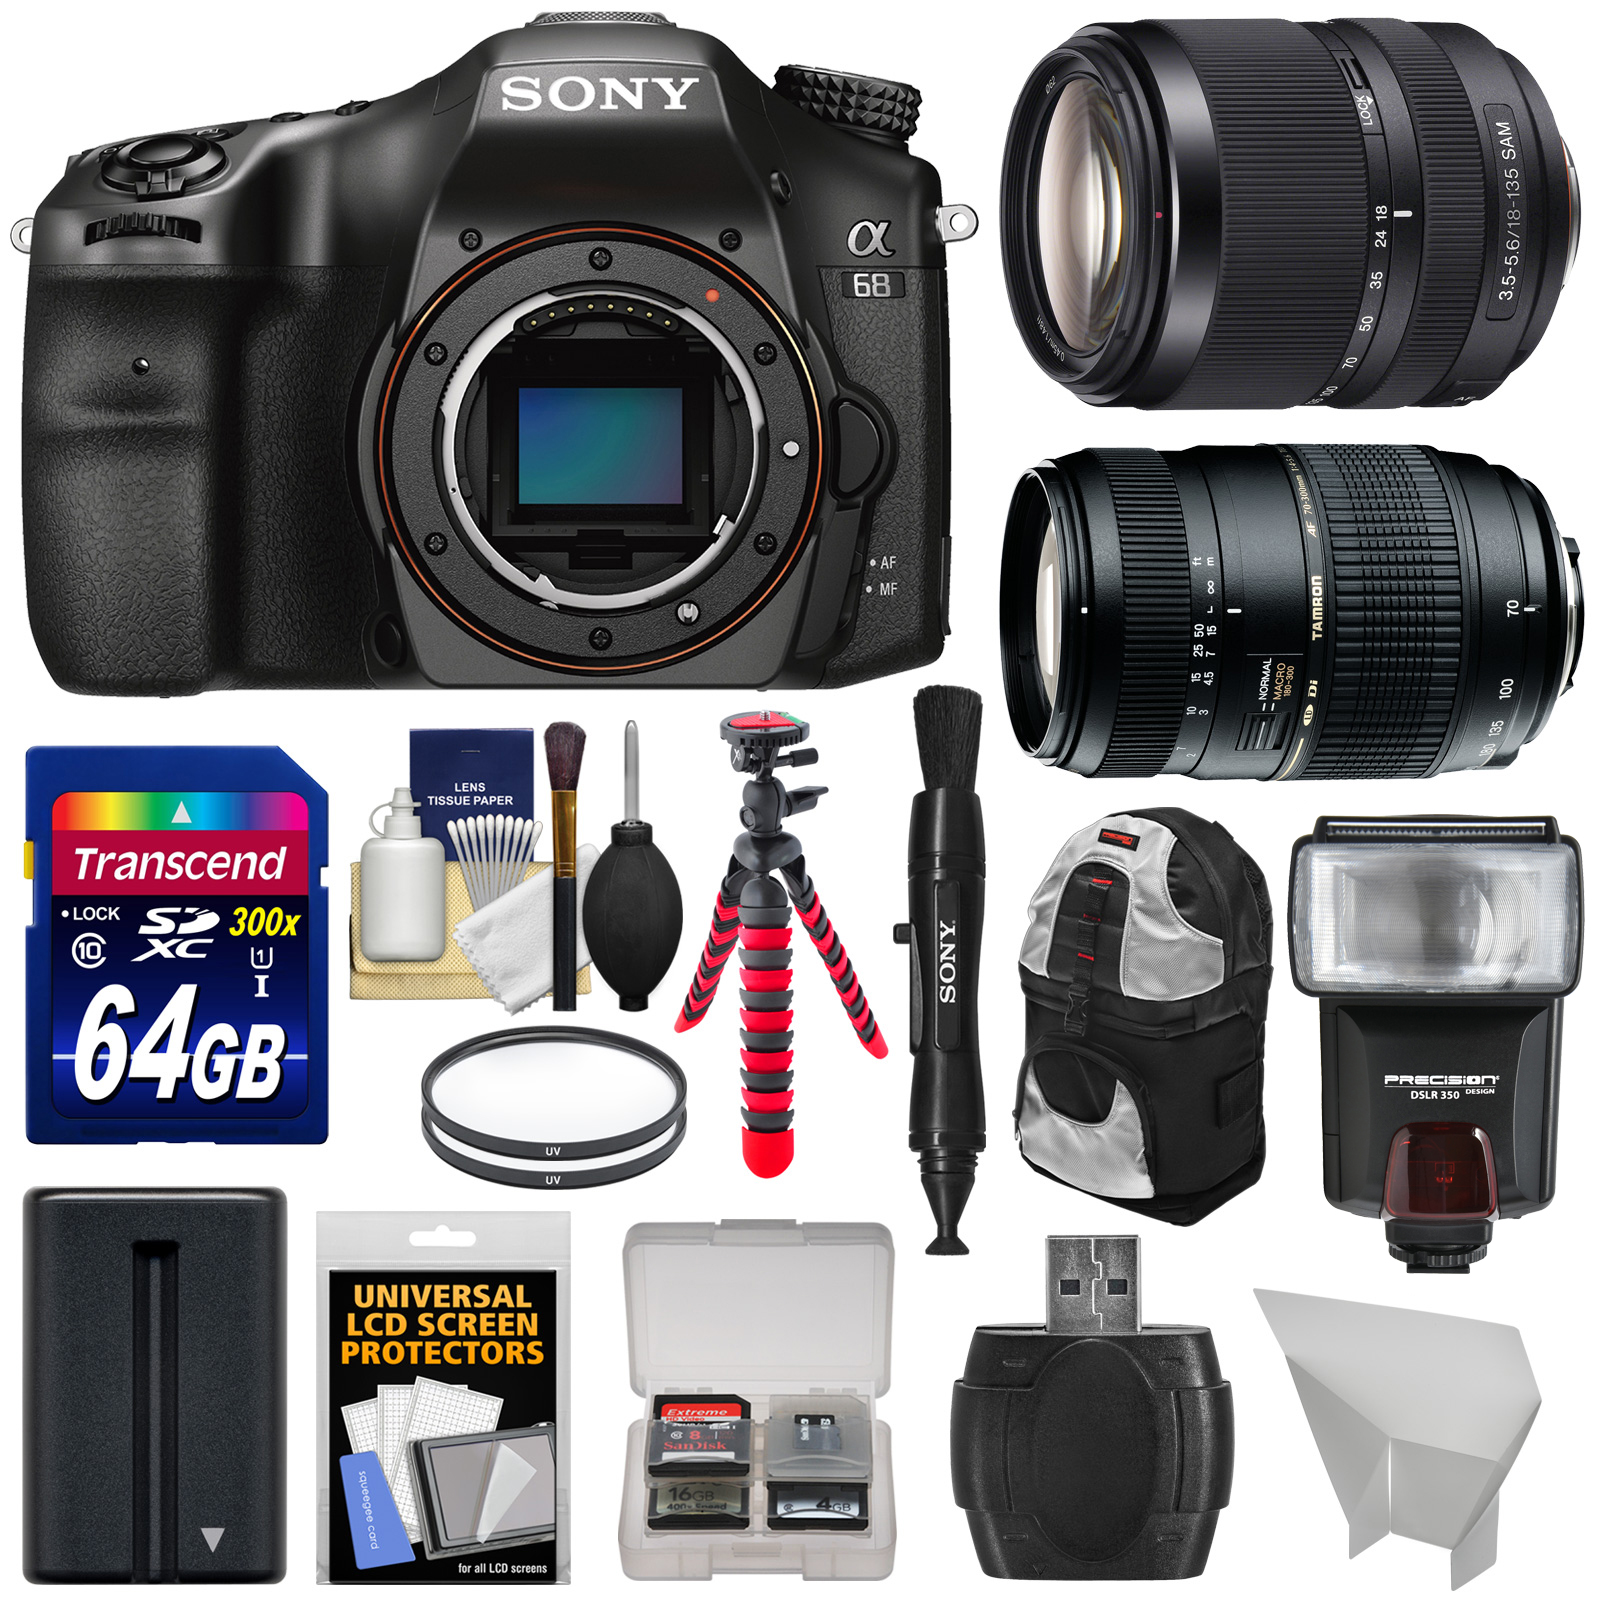 Sony Alpha A68 Digital SLR Camera Body with 18-135mm ED & 70-300mm Lenses + 64GB Card + Battery + Backpack +... by Sony